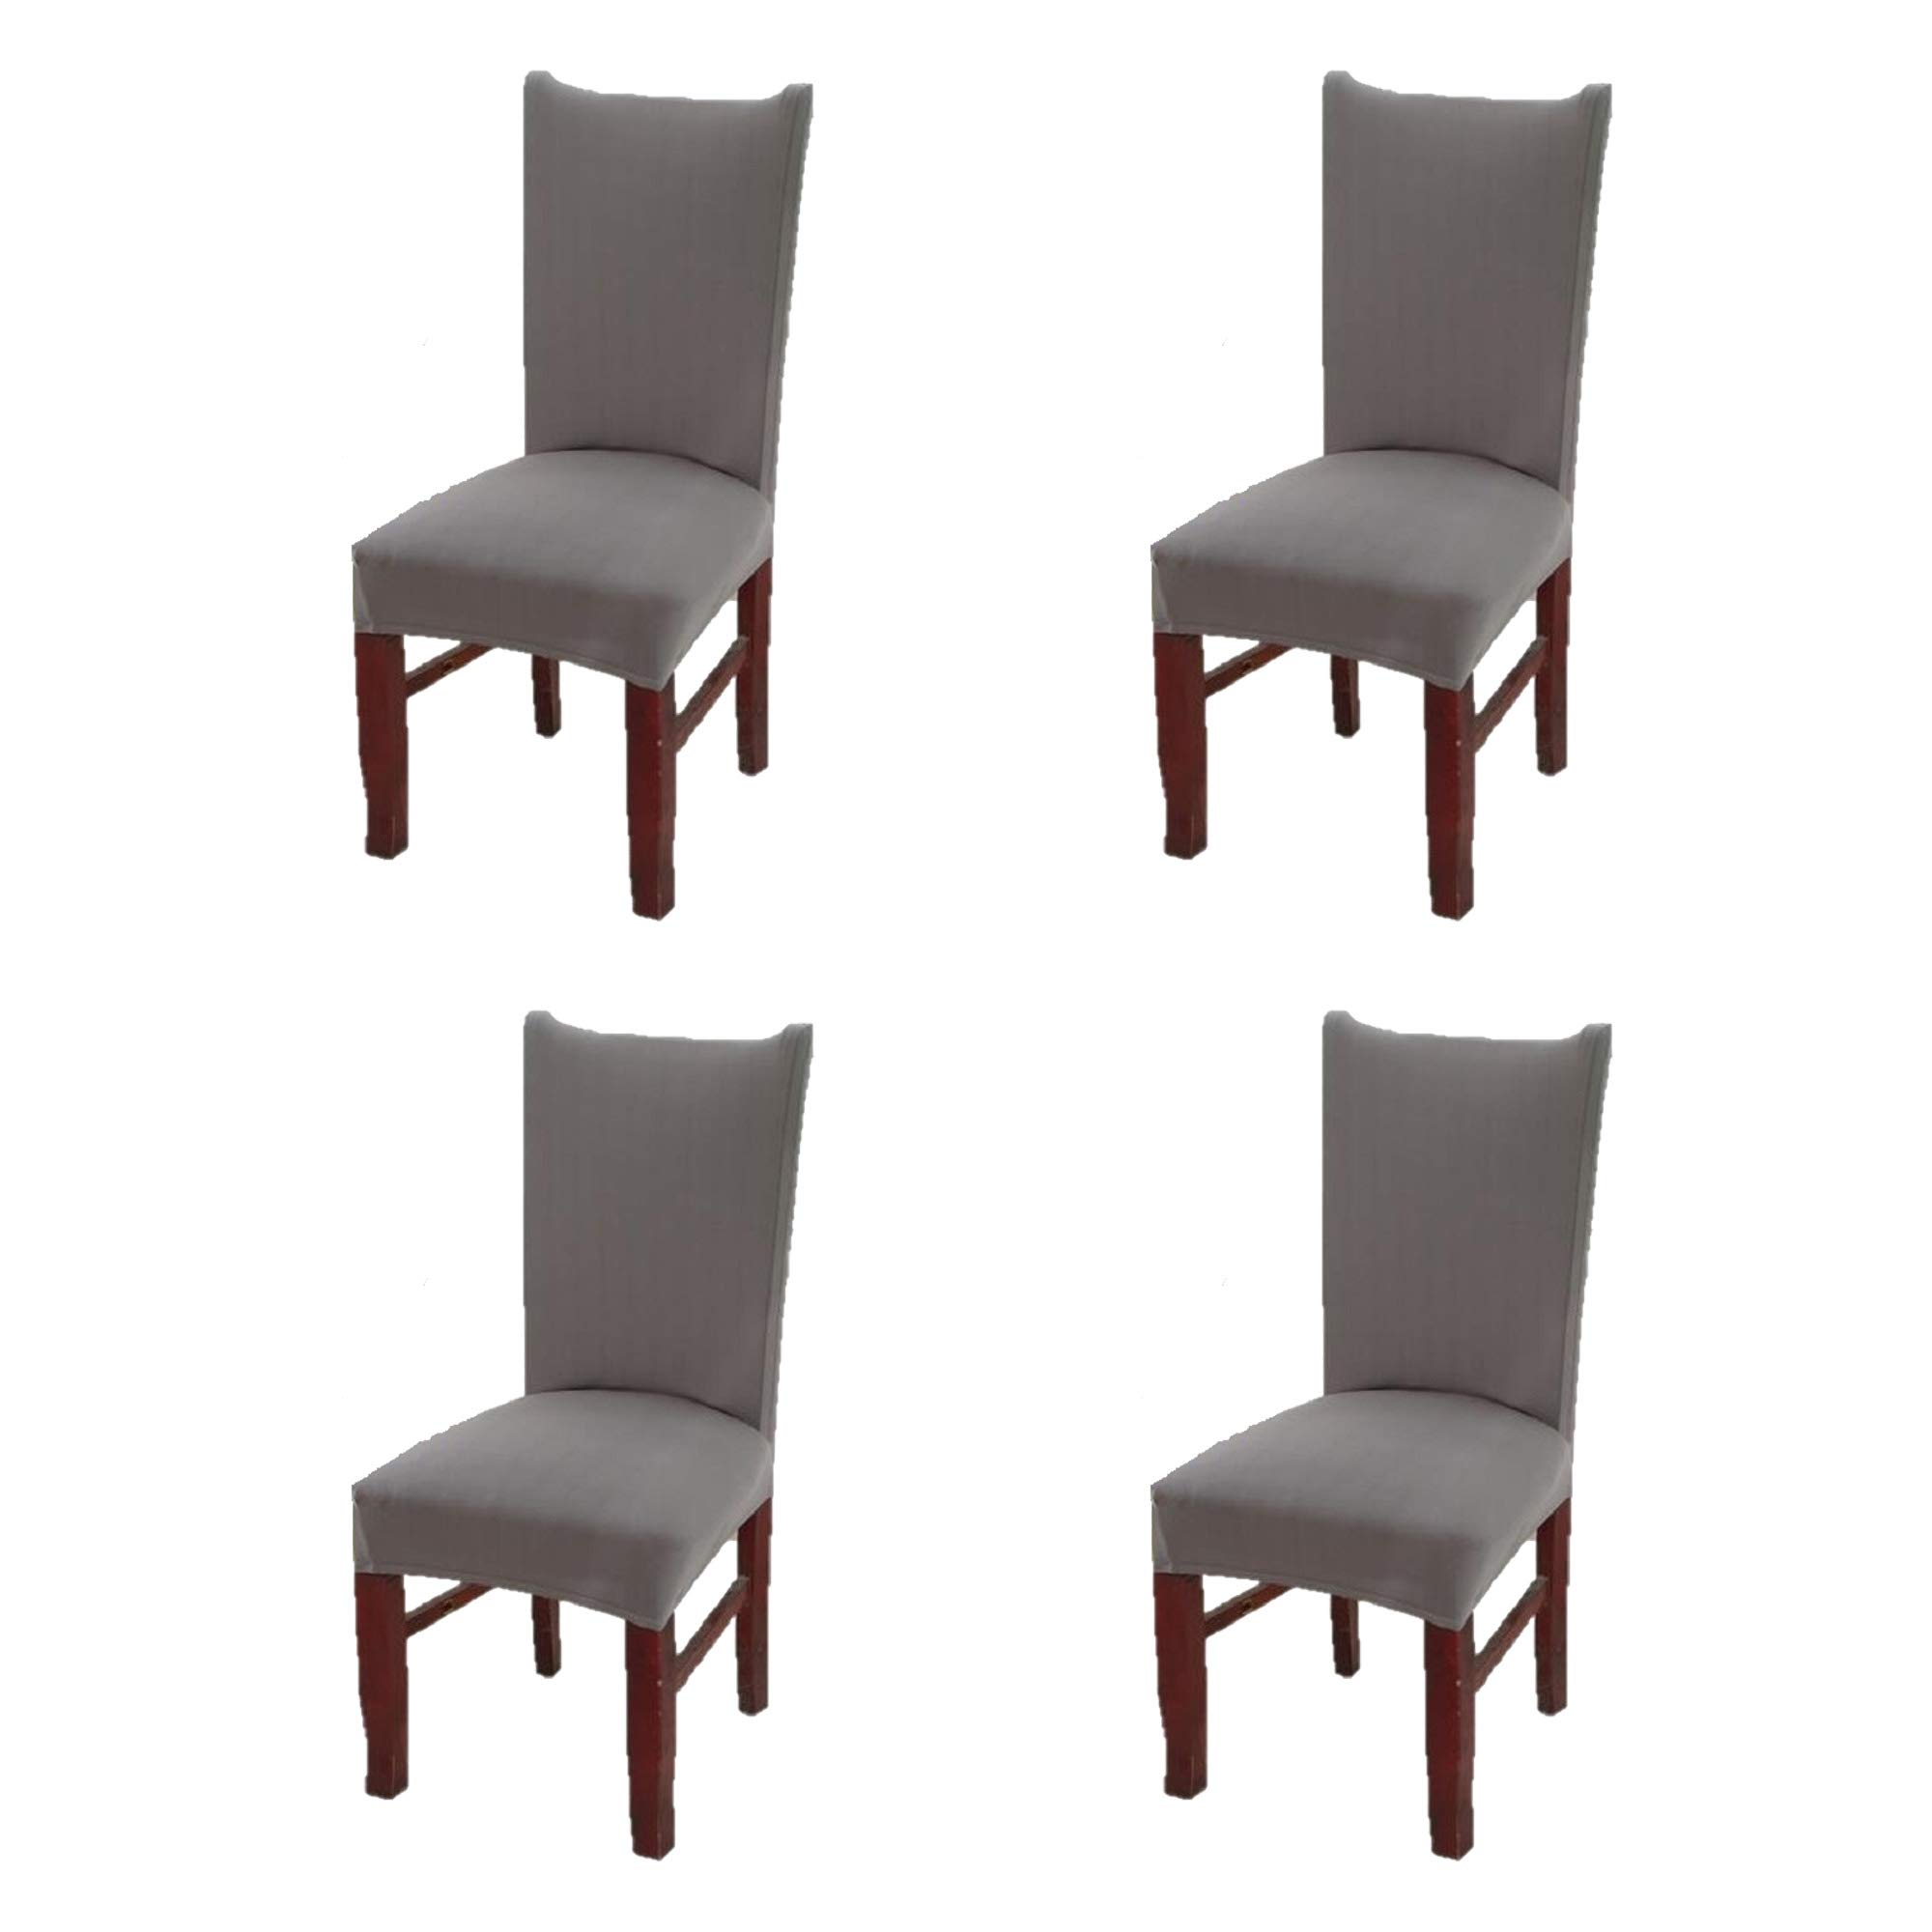 Short Dining Room Chair Chair Pads Amp Cushions